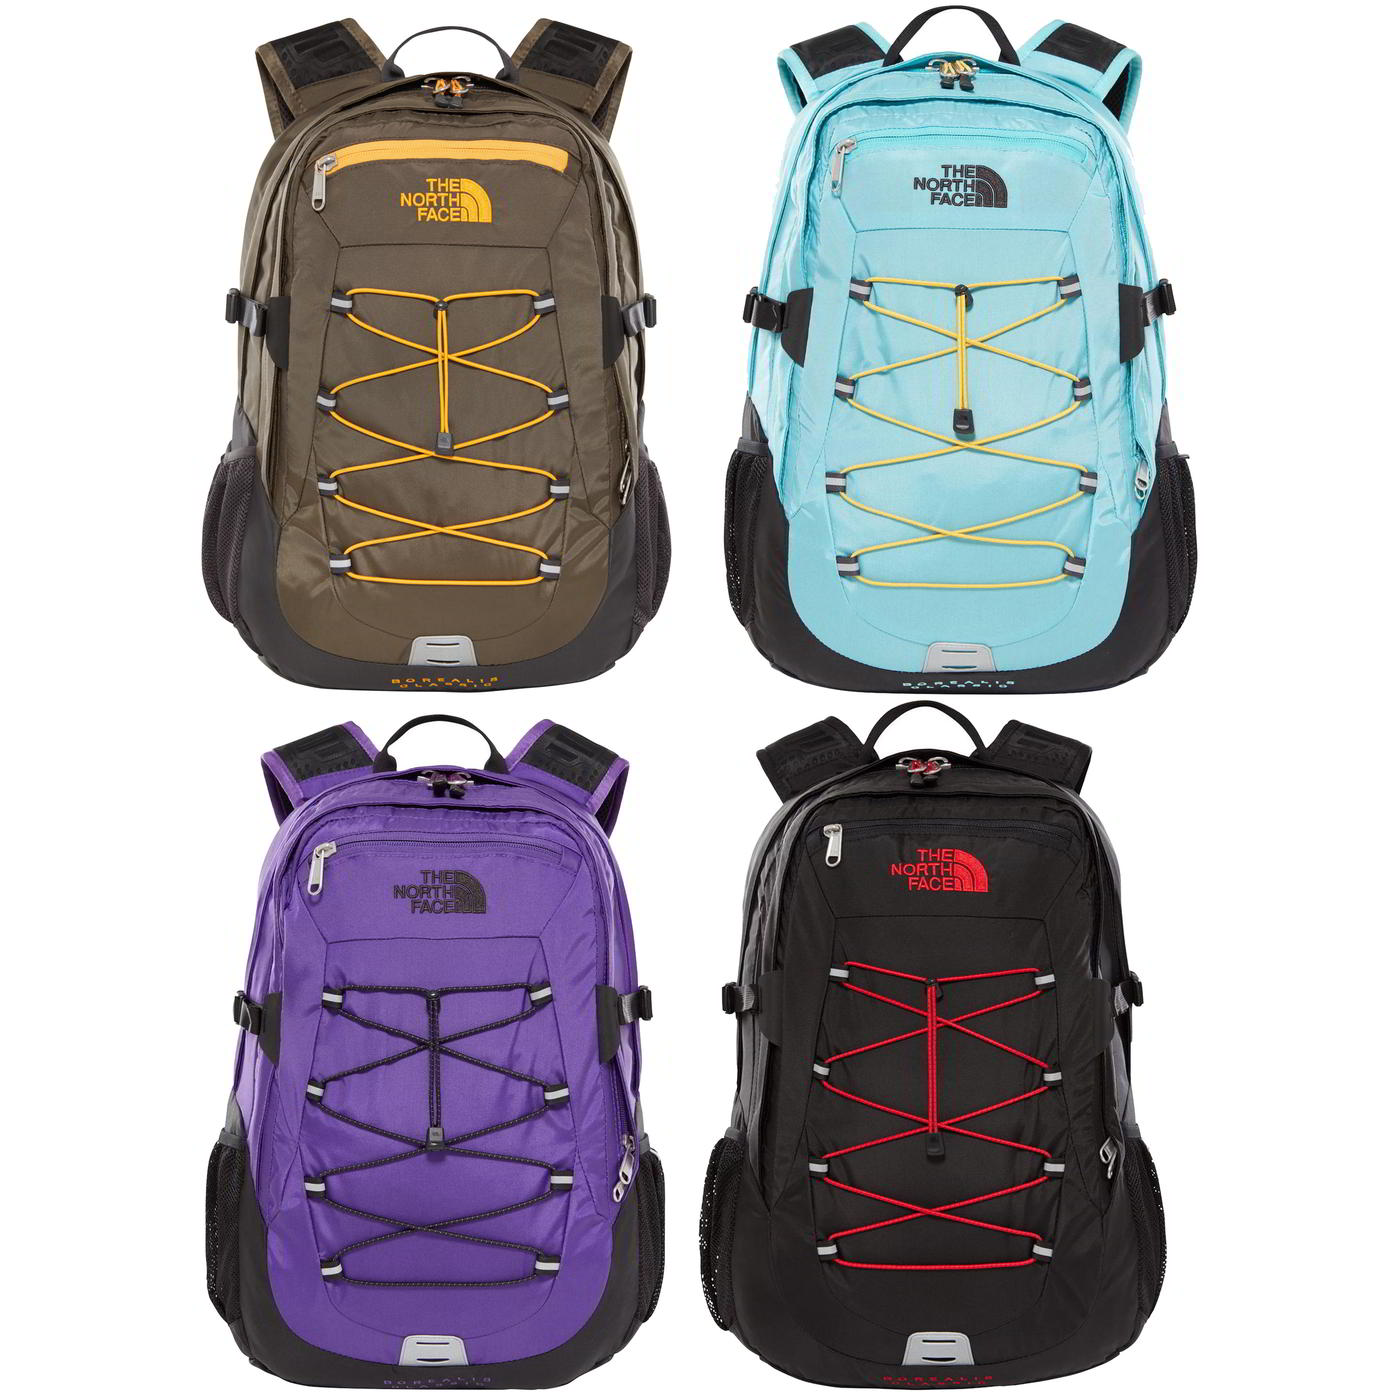 8d0d25b0c Details about The North Face Borealis Classic Backpack Travel School Bag  29L 15